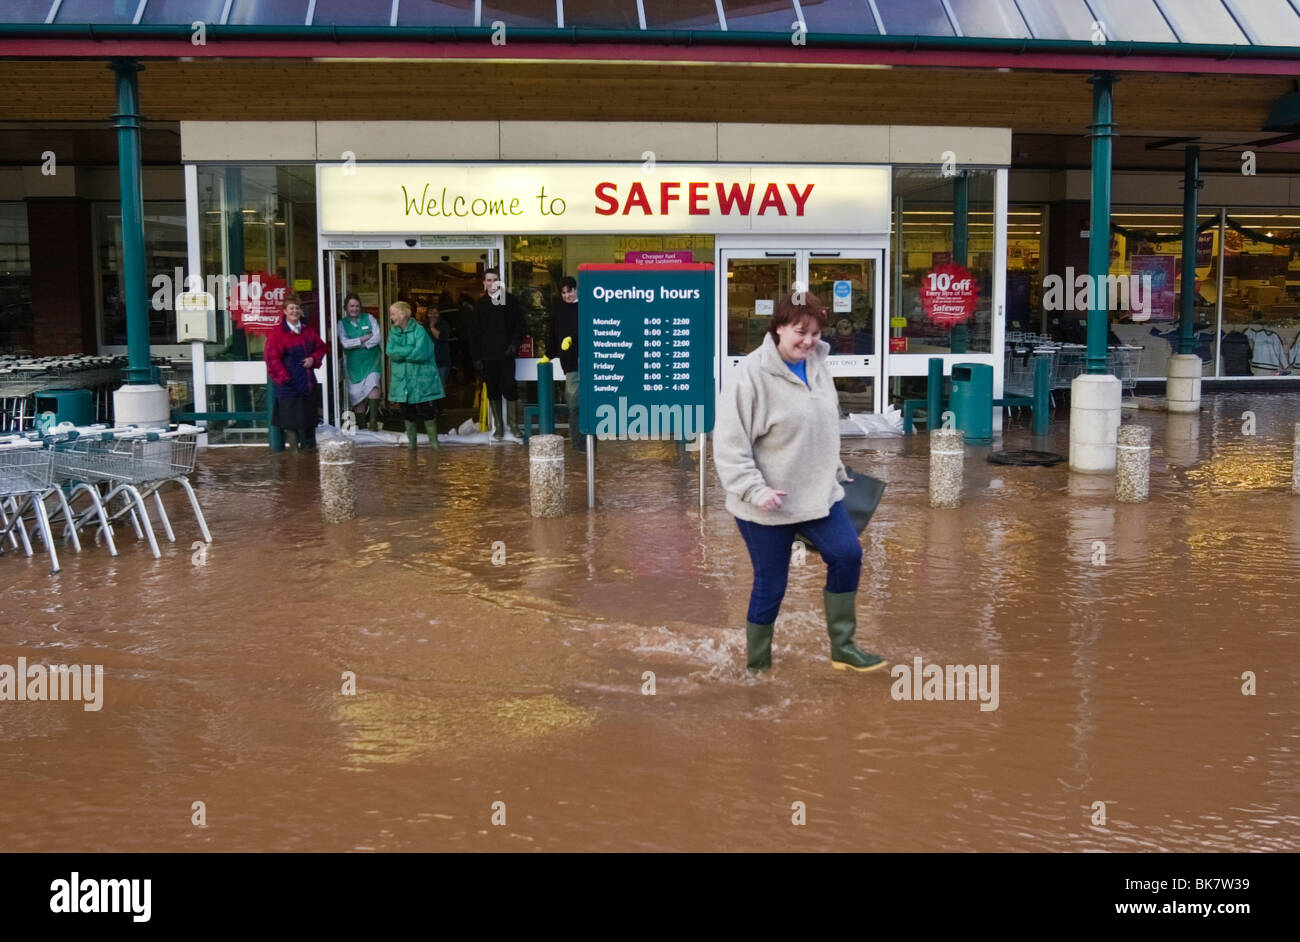 Safeway store sign stock photos safeway store sign stock images safeway store flooded after heavy rain at ross on wye herefordshire england uk stock image buycottarizona